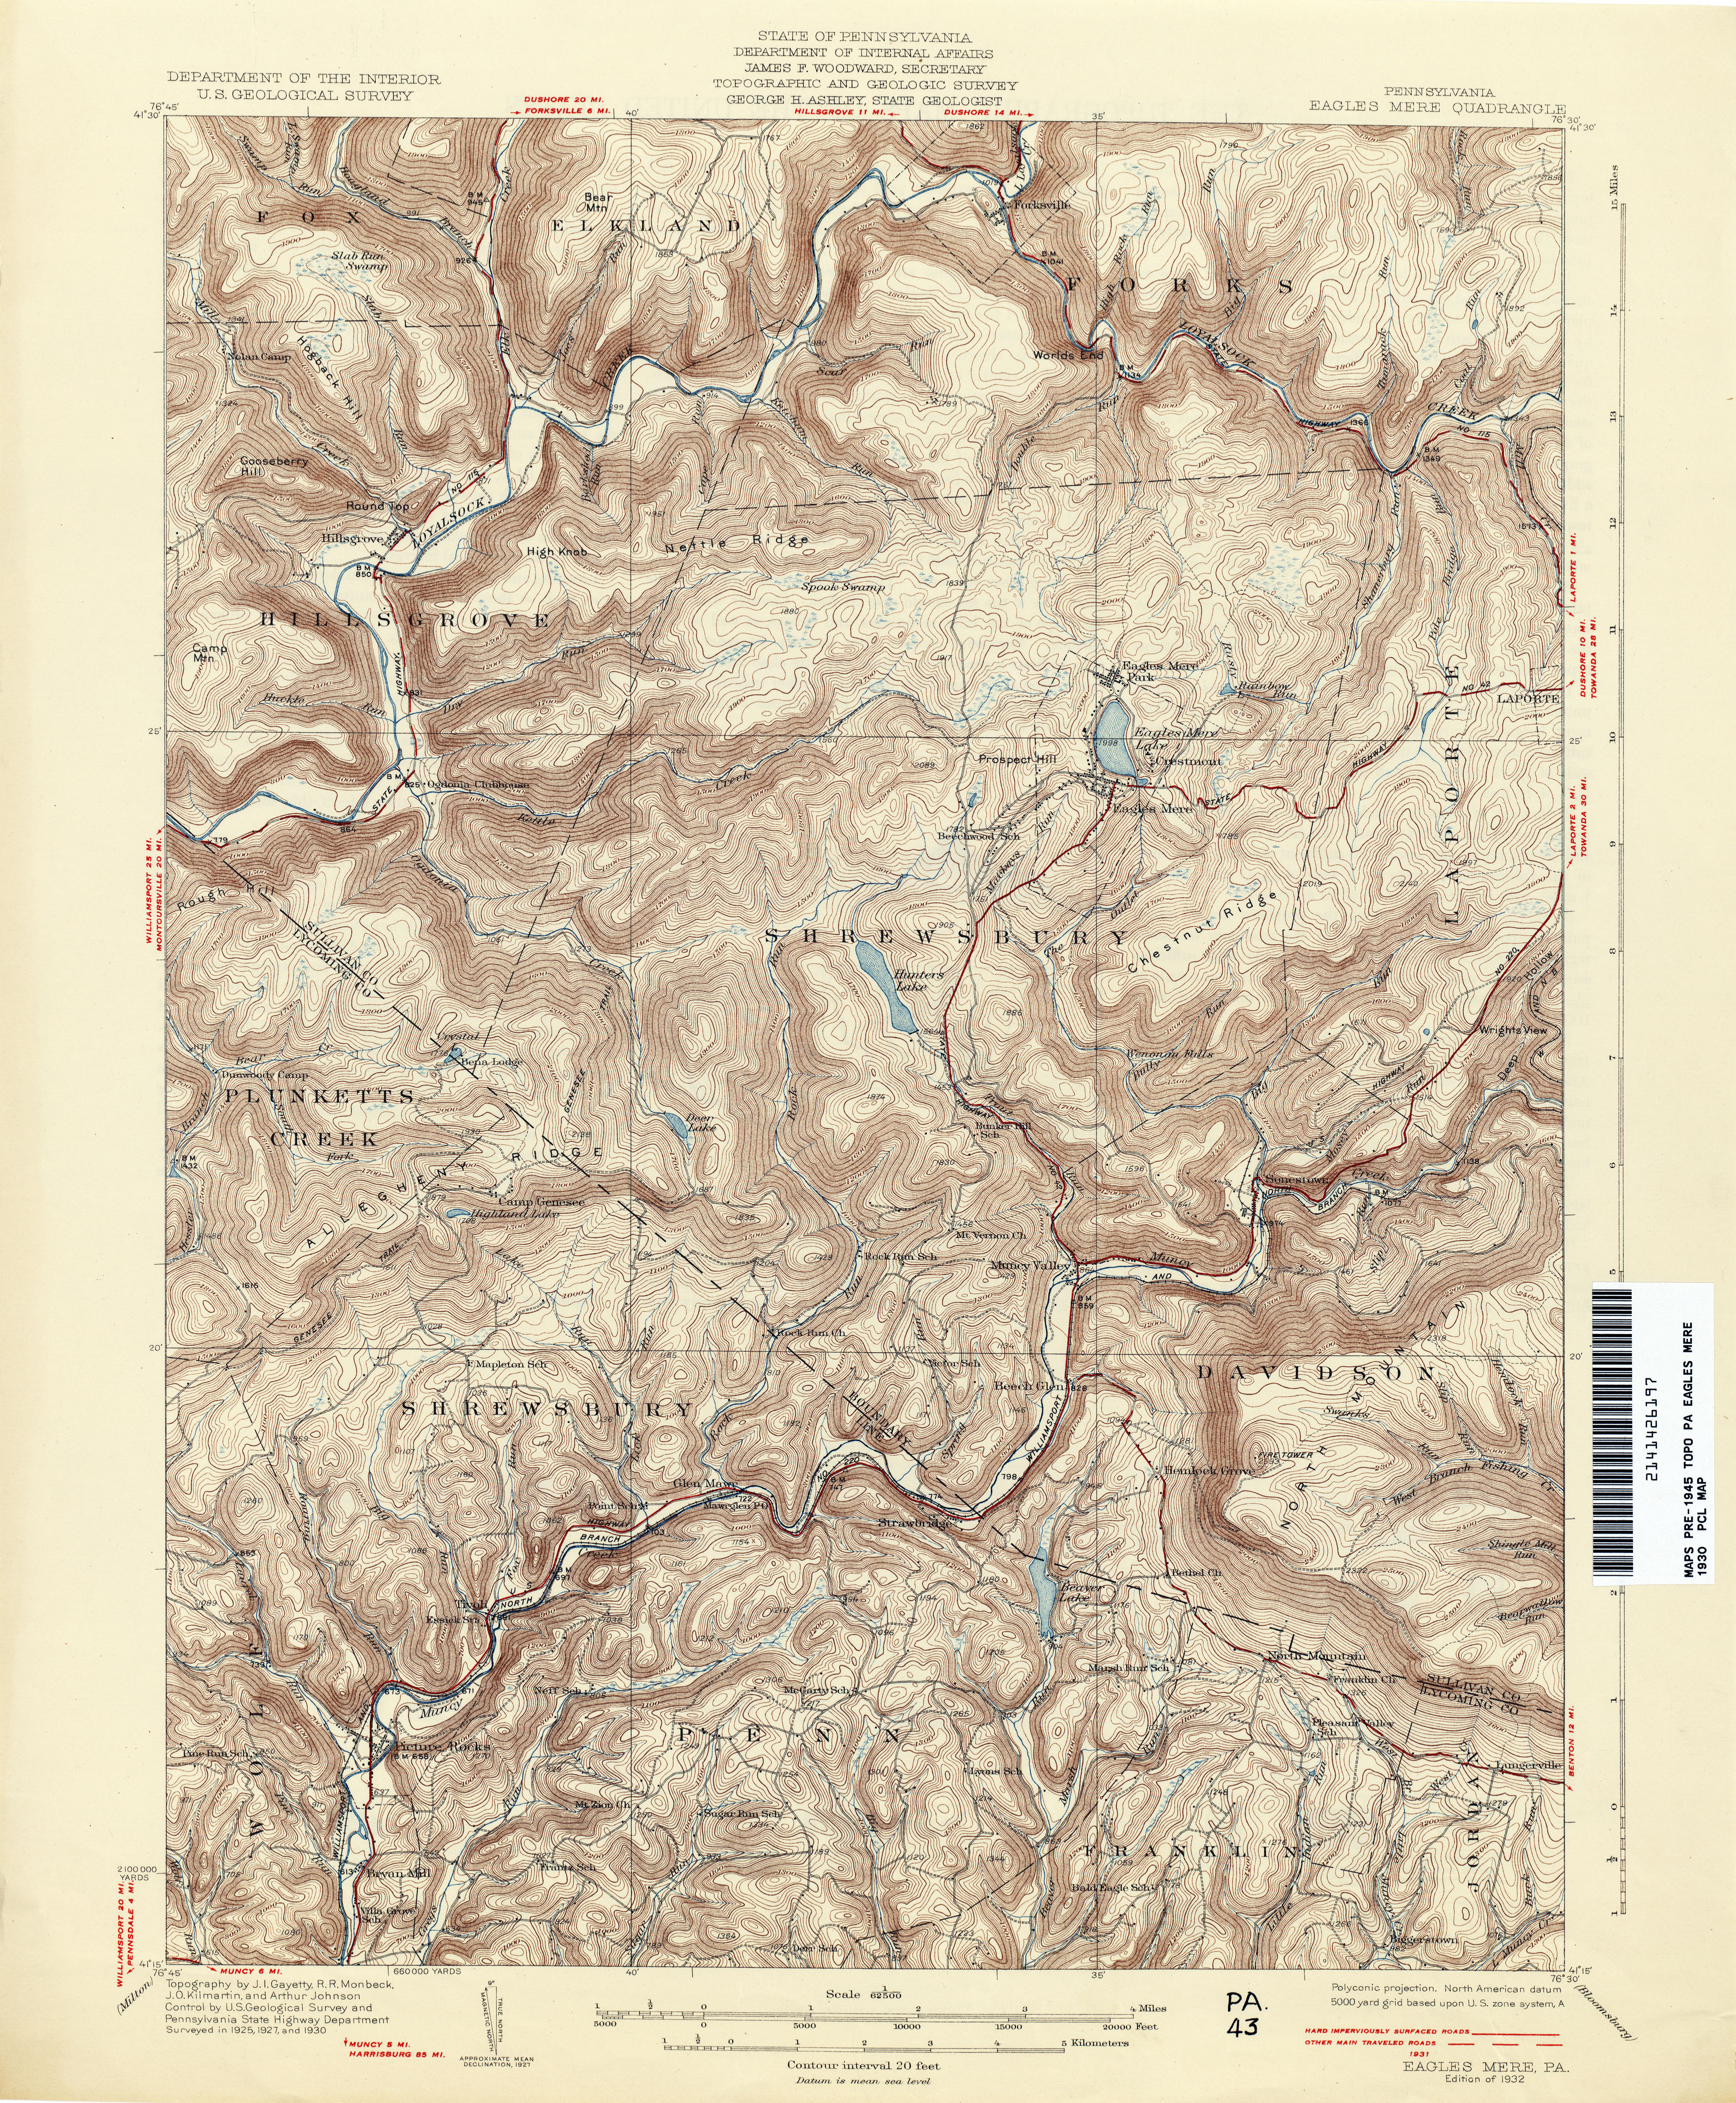 Pennsylvania Historical Topographic Maps Perry Castaneda Map